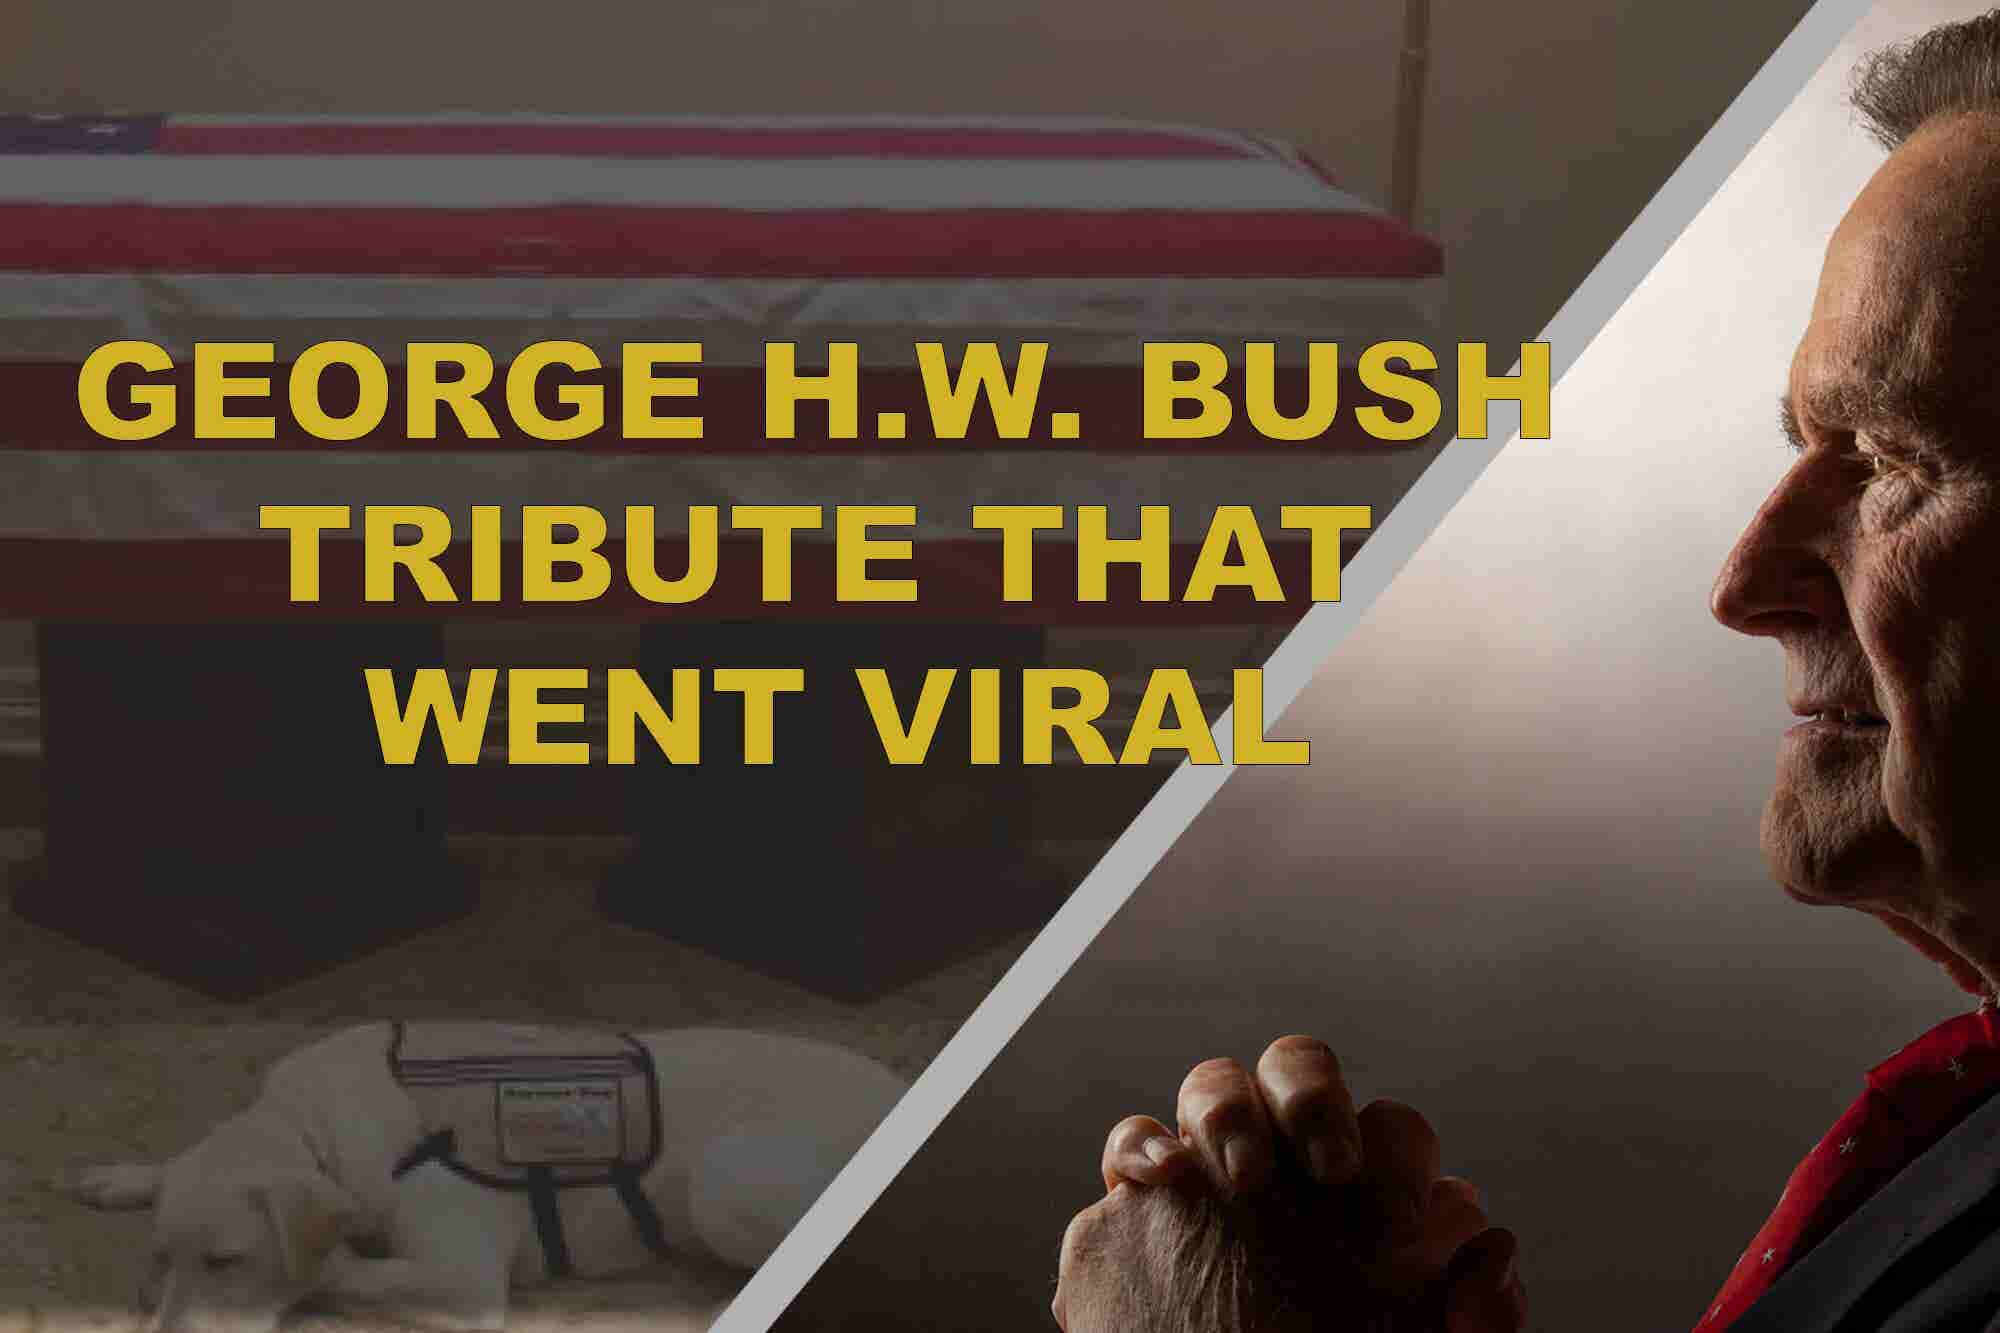 The Touching George H.W. Bush Tribute That's Gone Viral (60-Second Video)